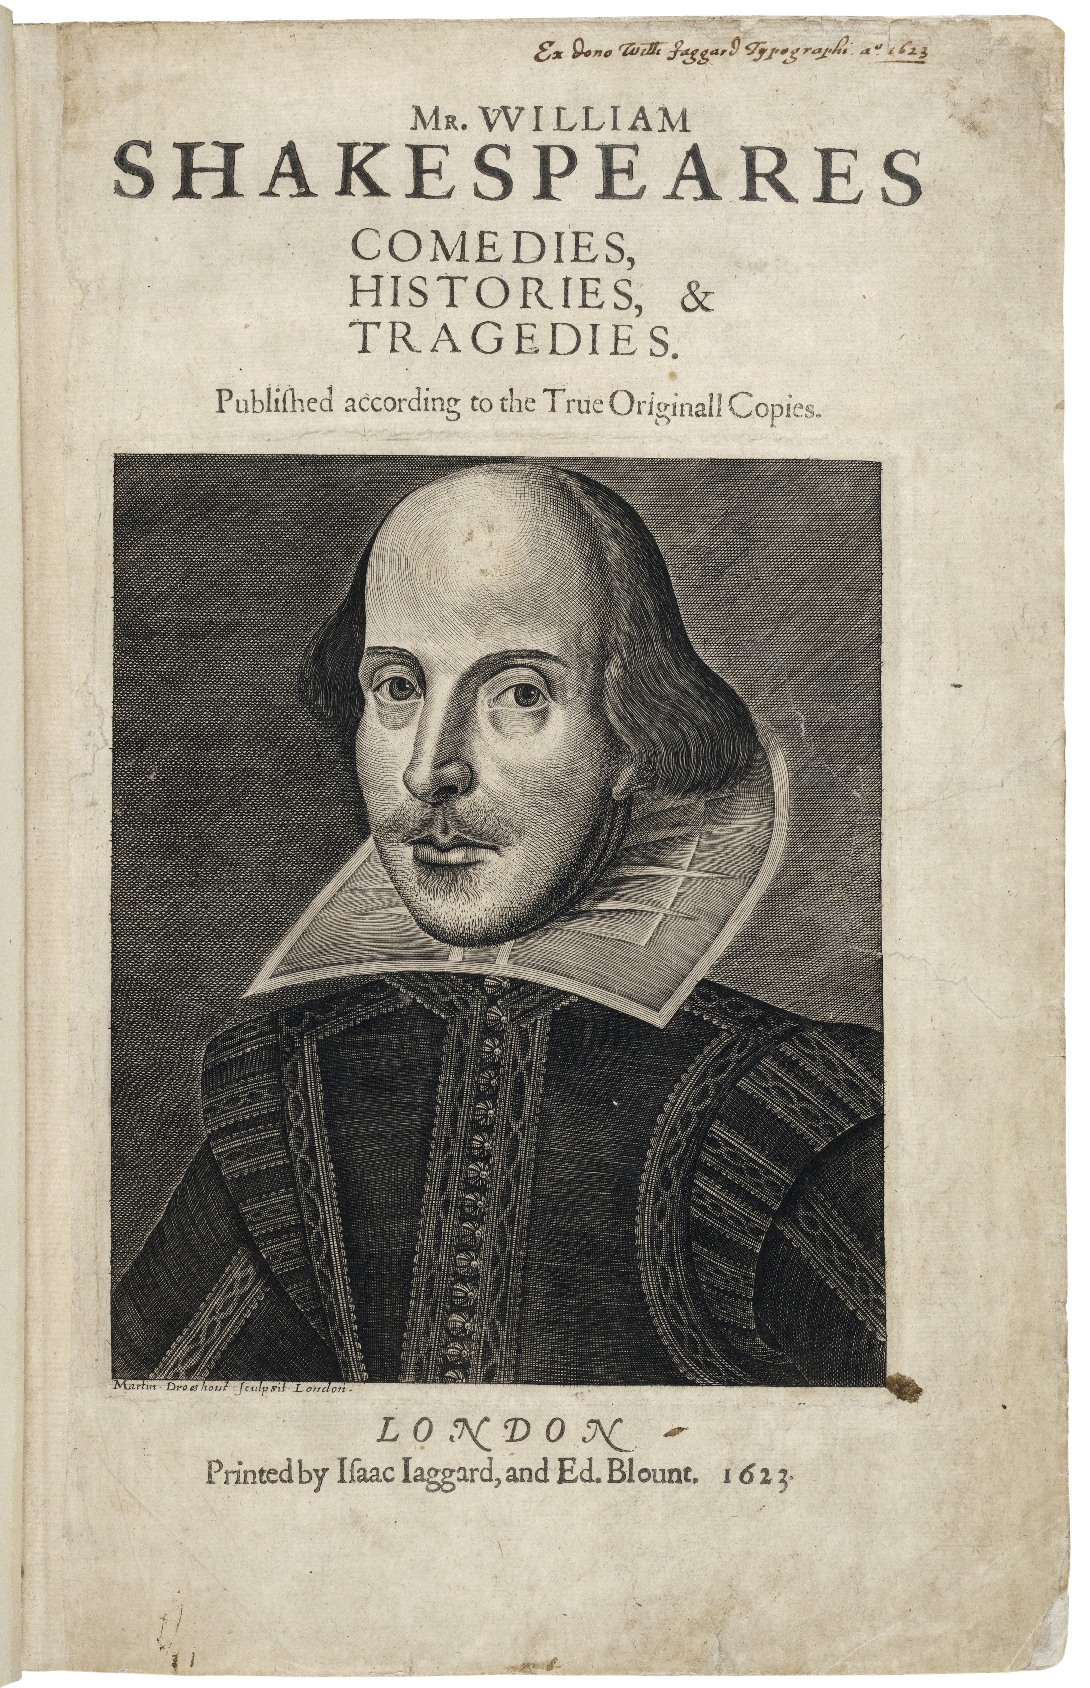 Title page of plays by Shakespeare, with his image, printed in 1633